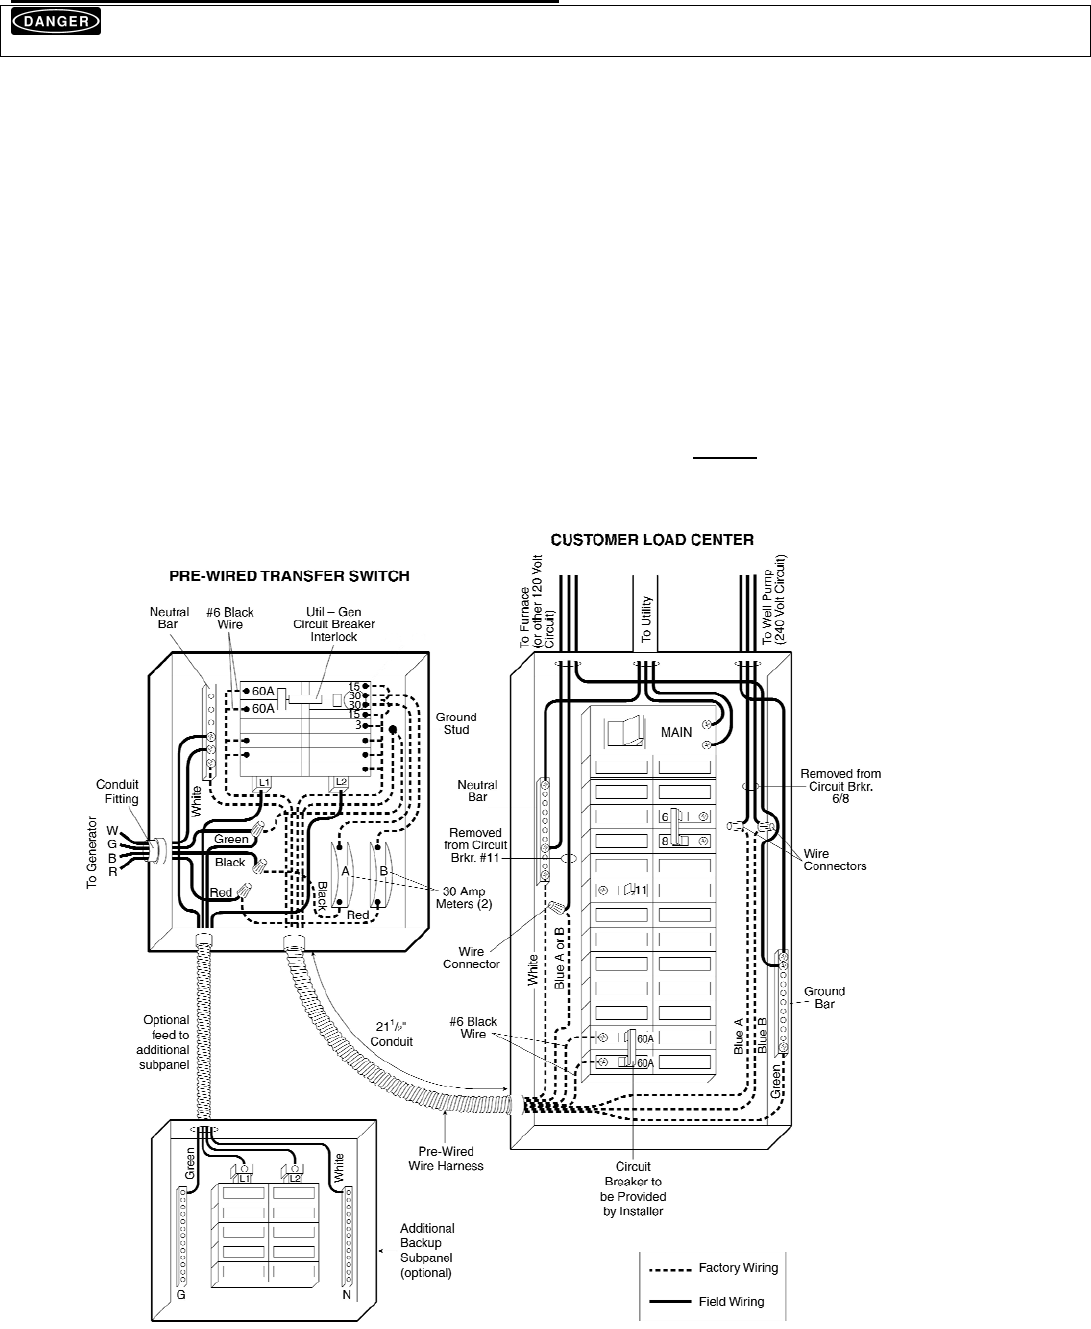 Generac Switch Manual Page 4 Of 13